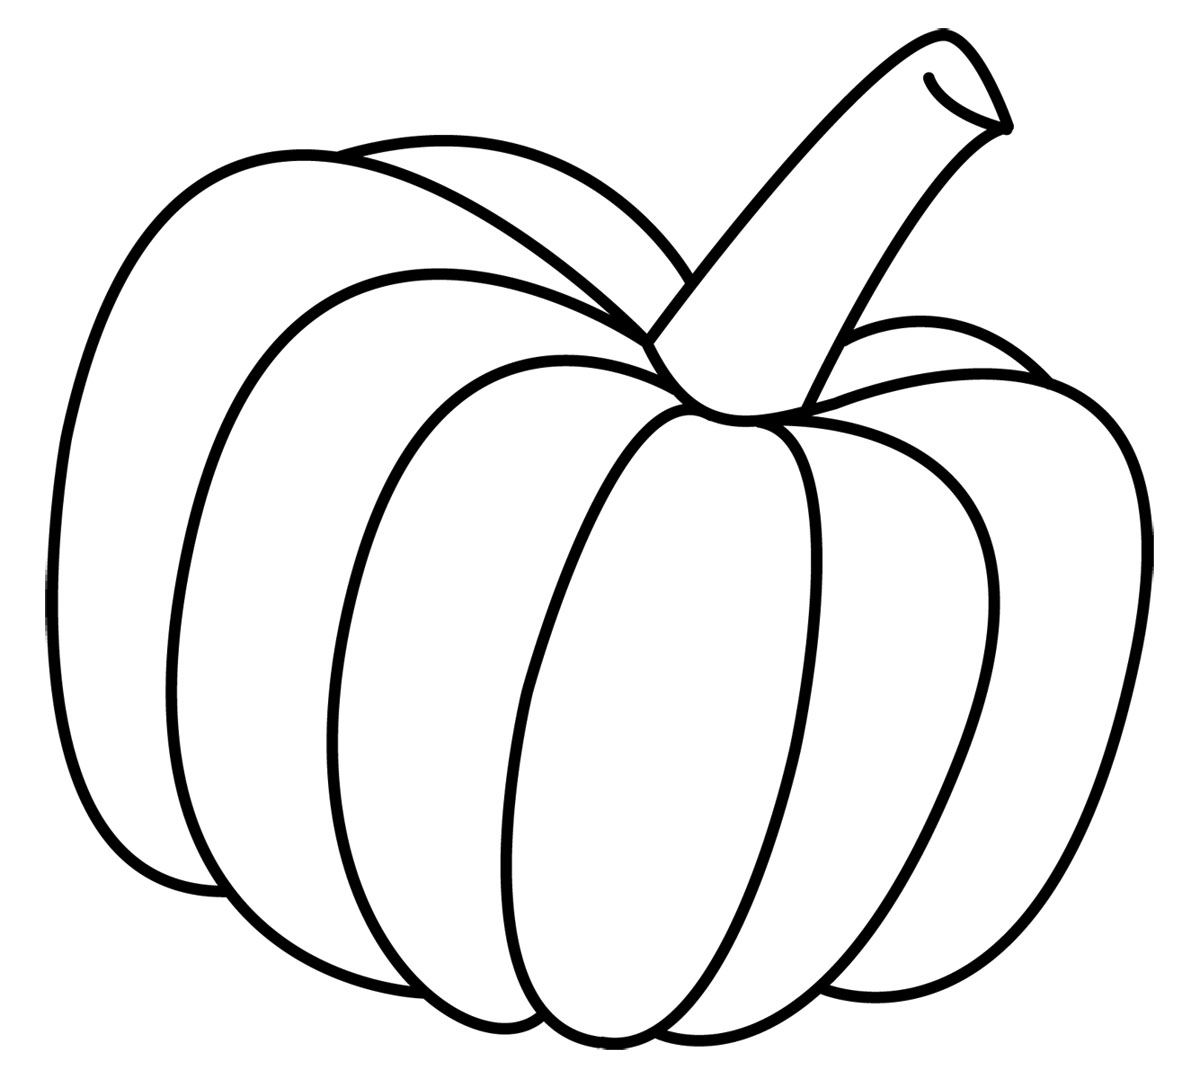 Line Art Work : Simple line art clipart best